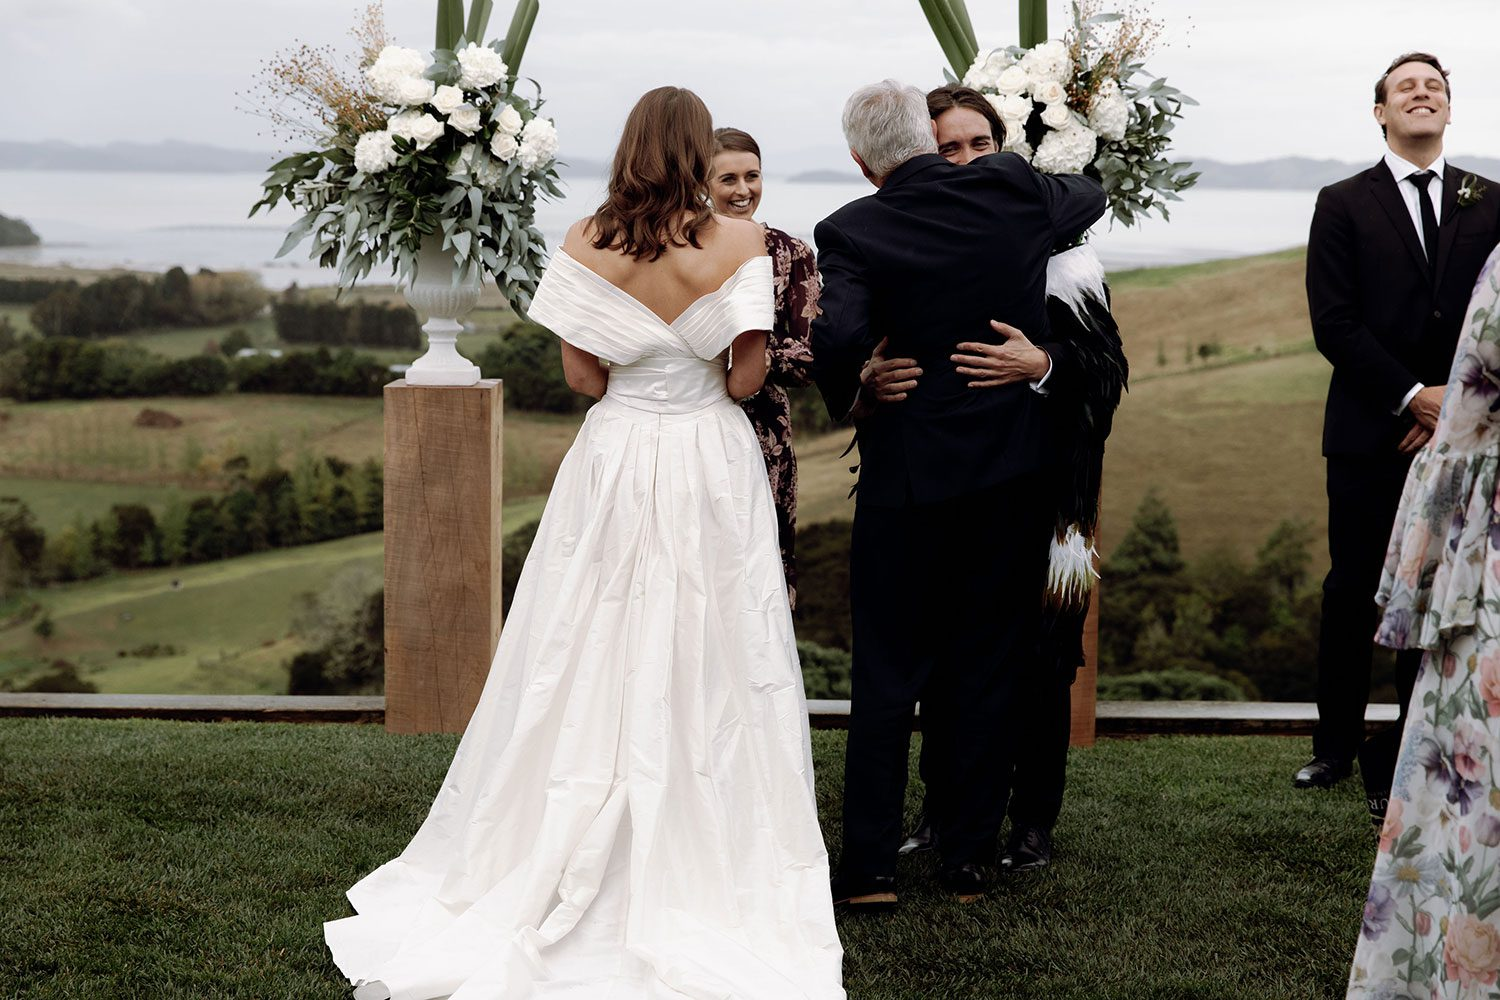 Bride wearing bespoke off shoulder bodice made with silk dupion and long train by NZ wedding dress maker Vinka Designs - giving away